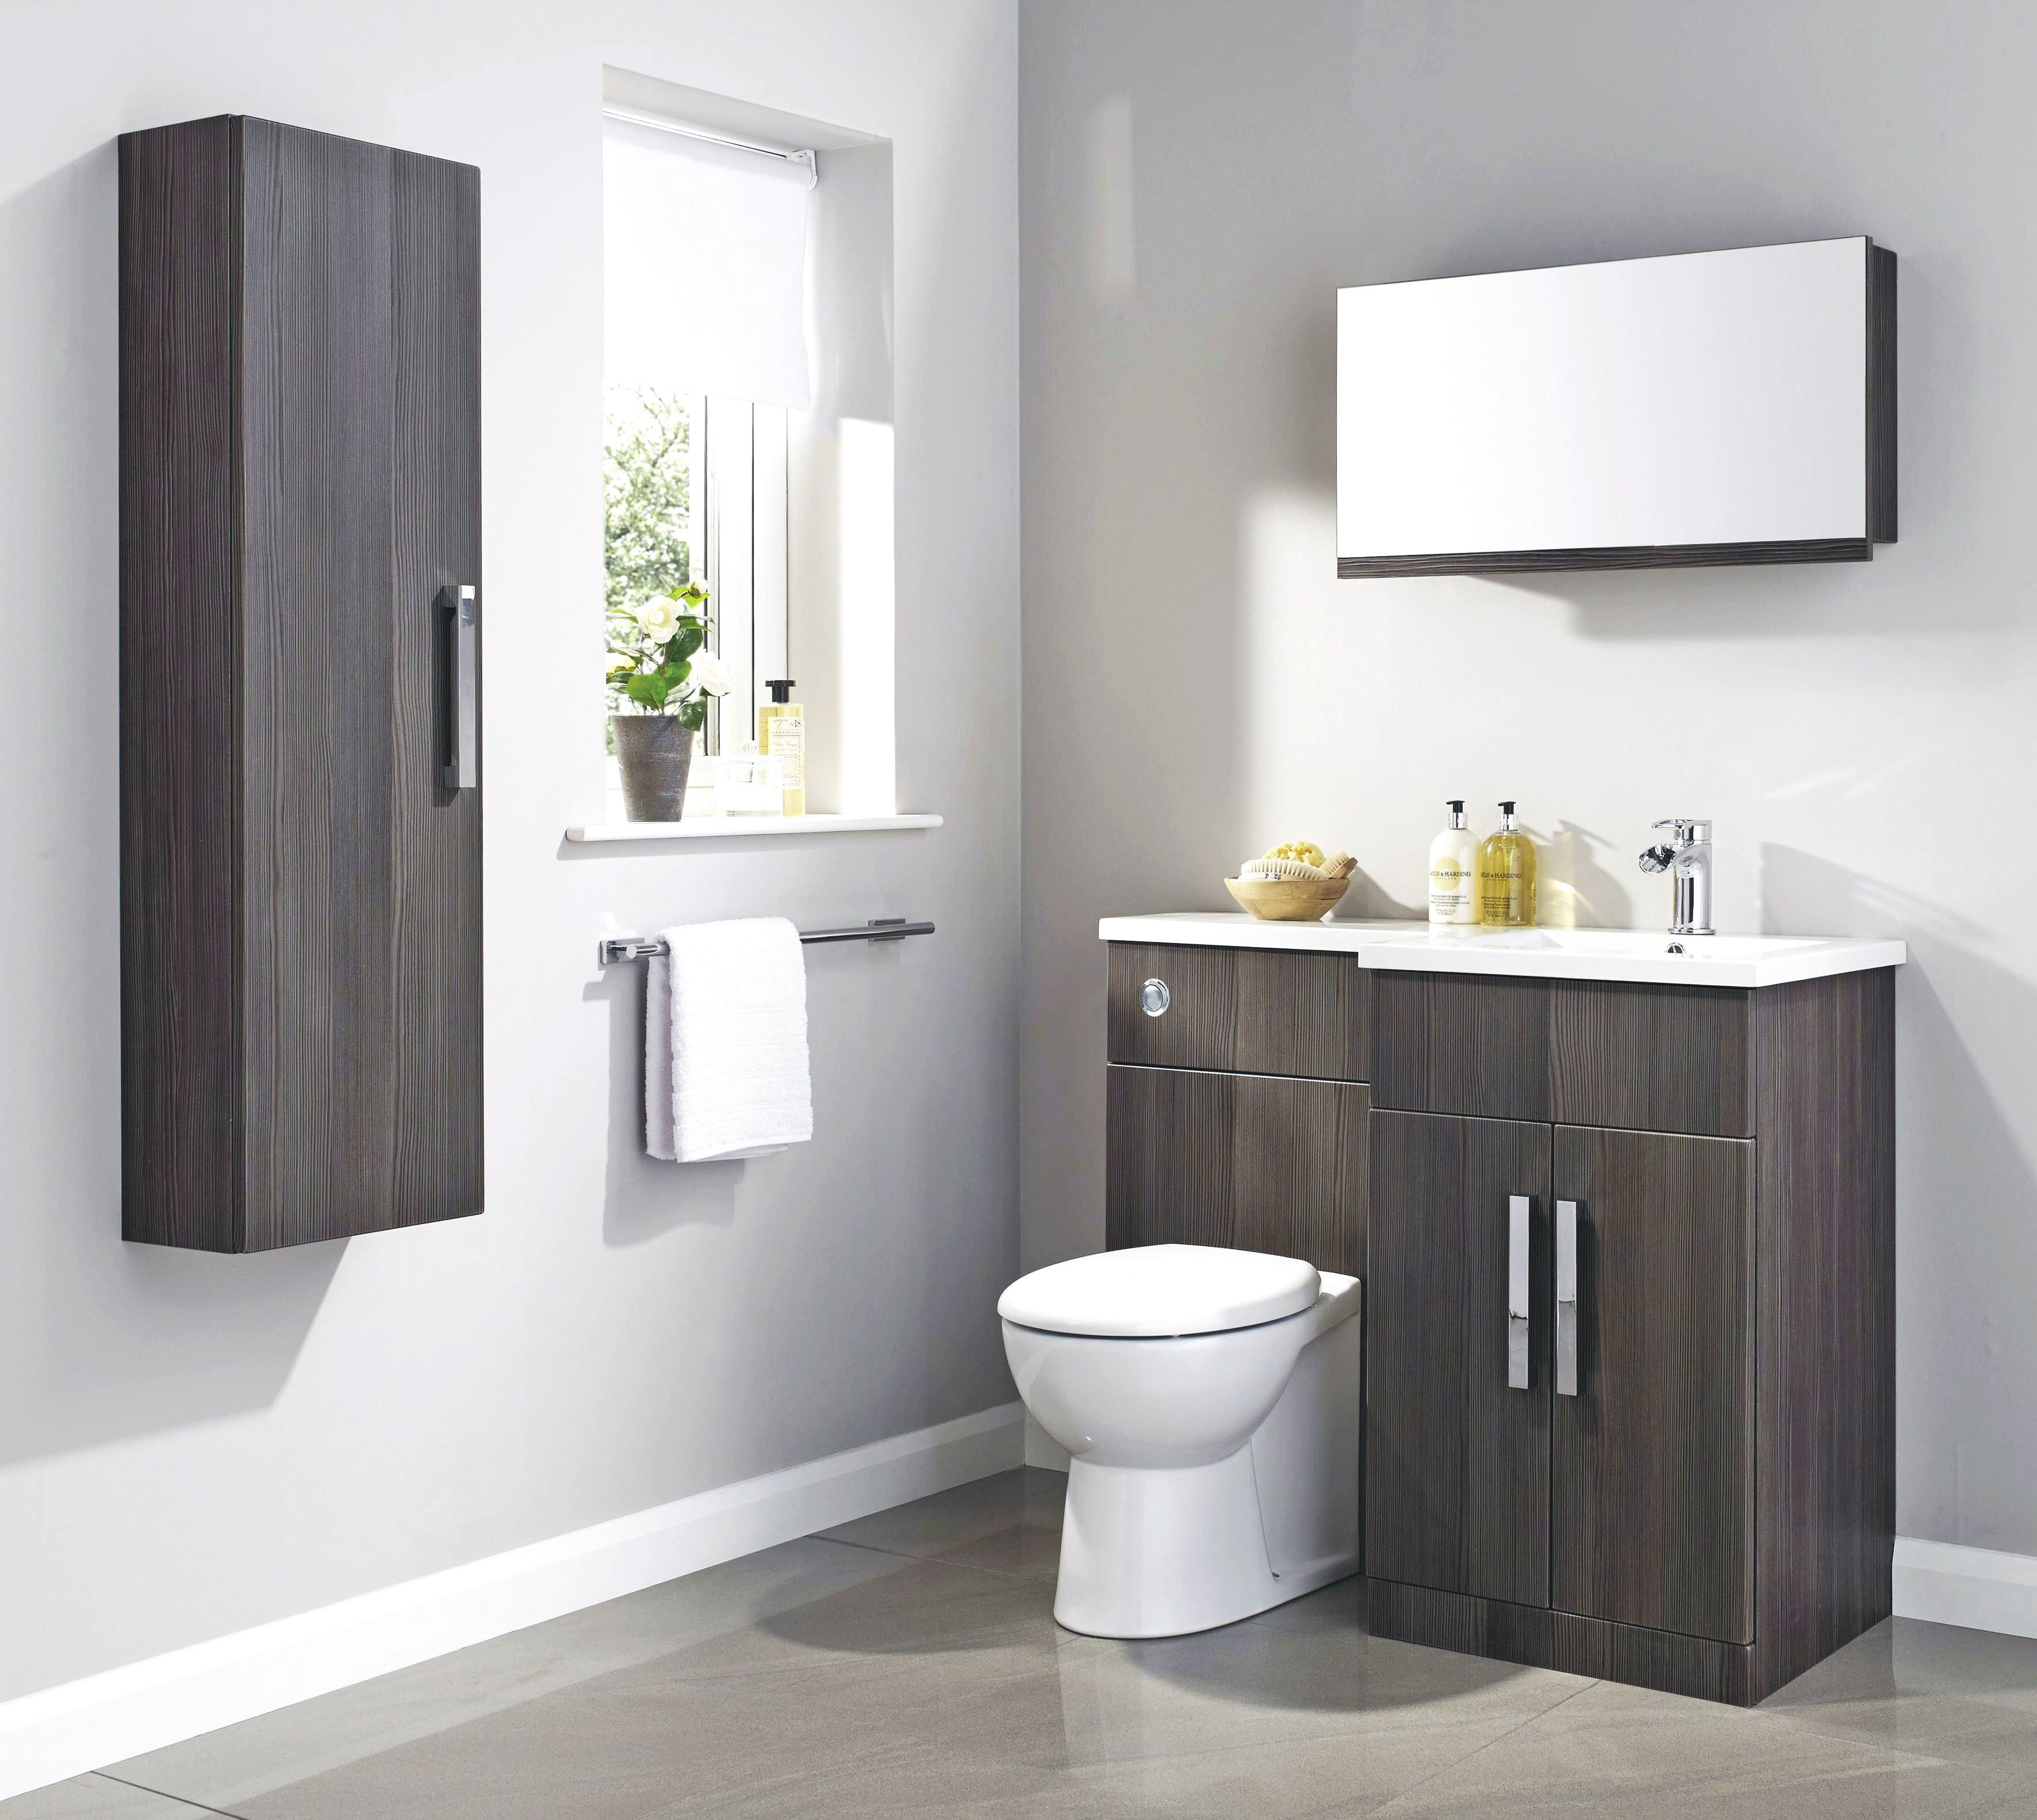 ardesio freestanding bathroom furniture BKOJWUB